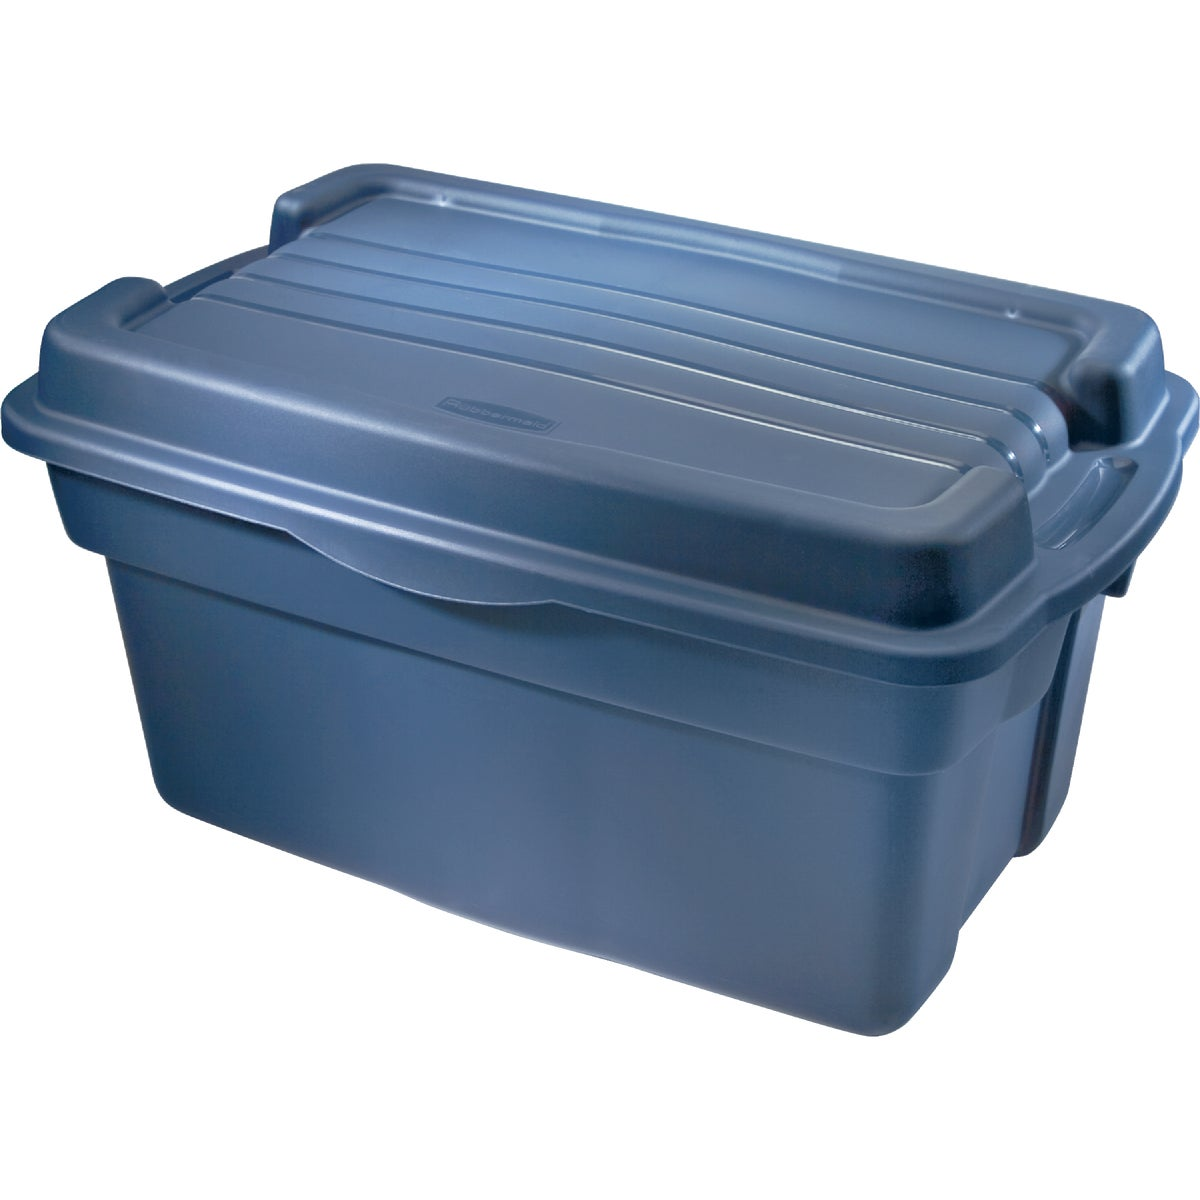 28GAL INDIGO STORAGE BOX - 246100DIM by Rubbermaid Home